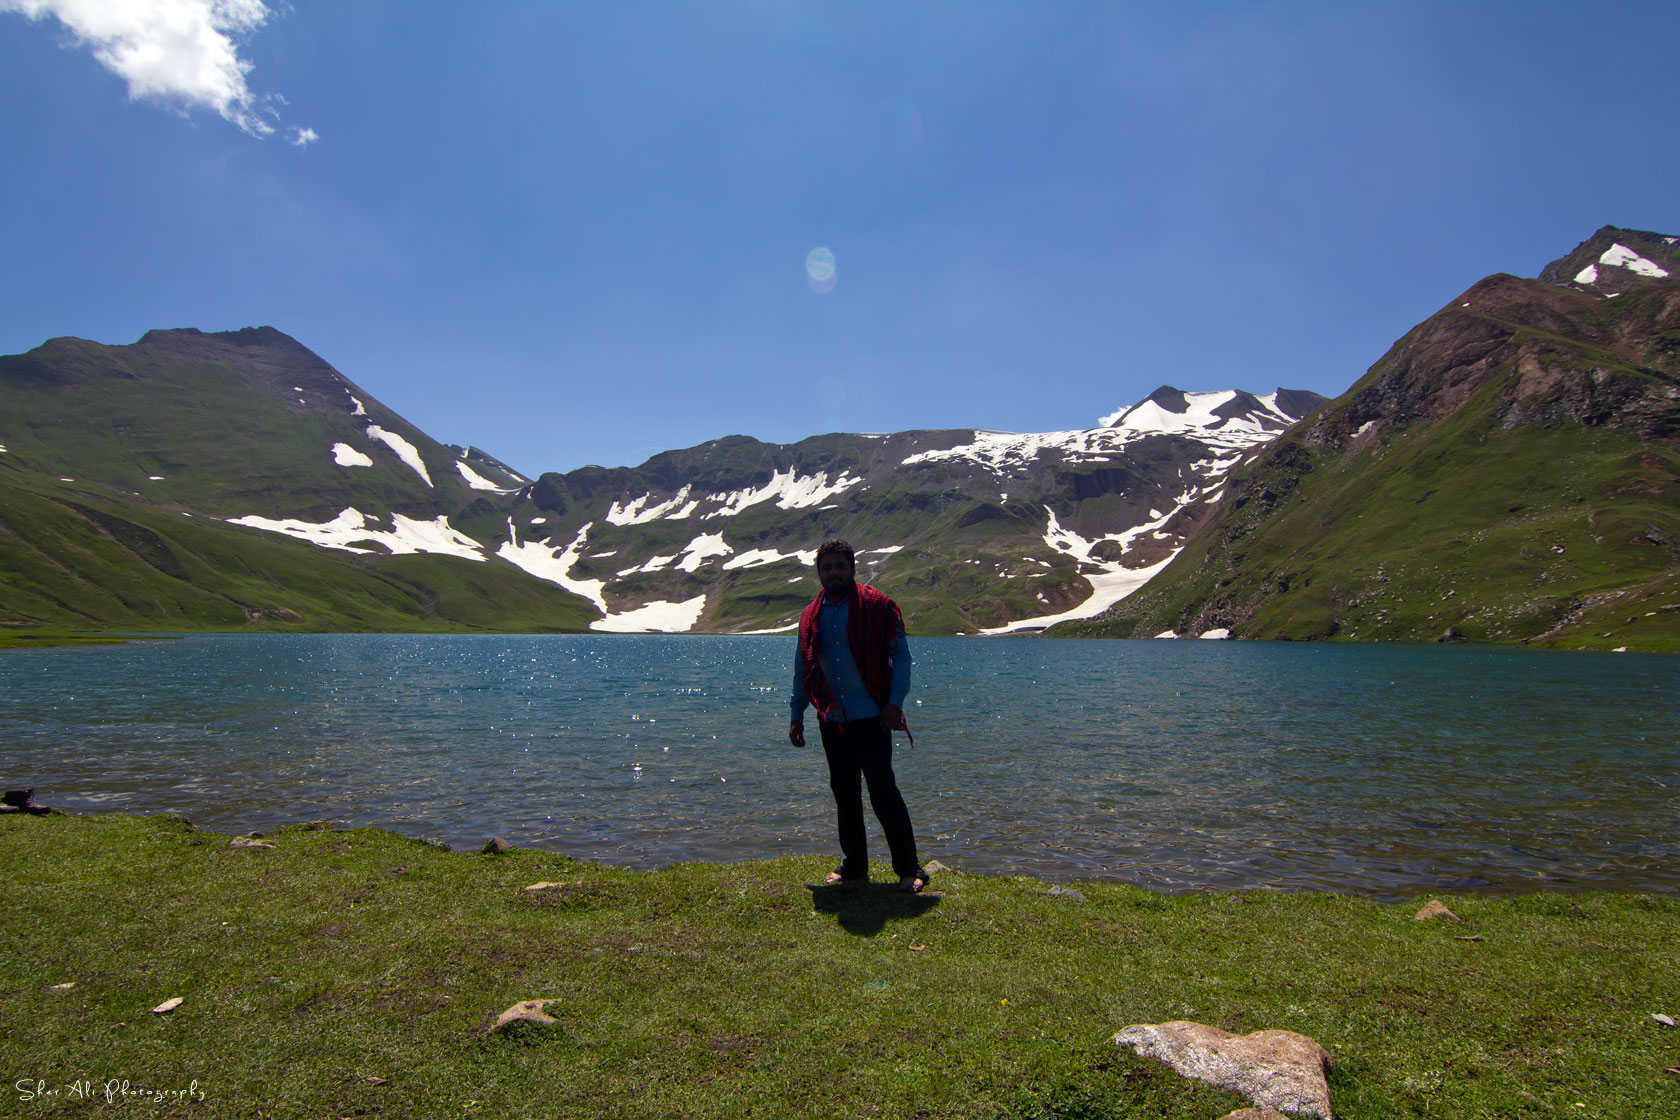 Dudipatsar Lake, Kaghan Valley